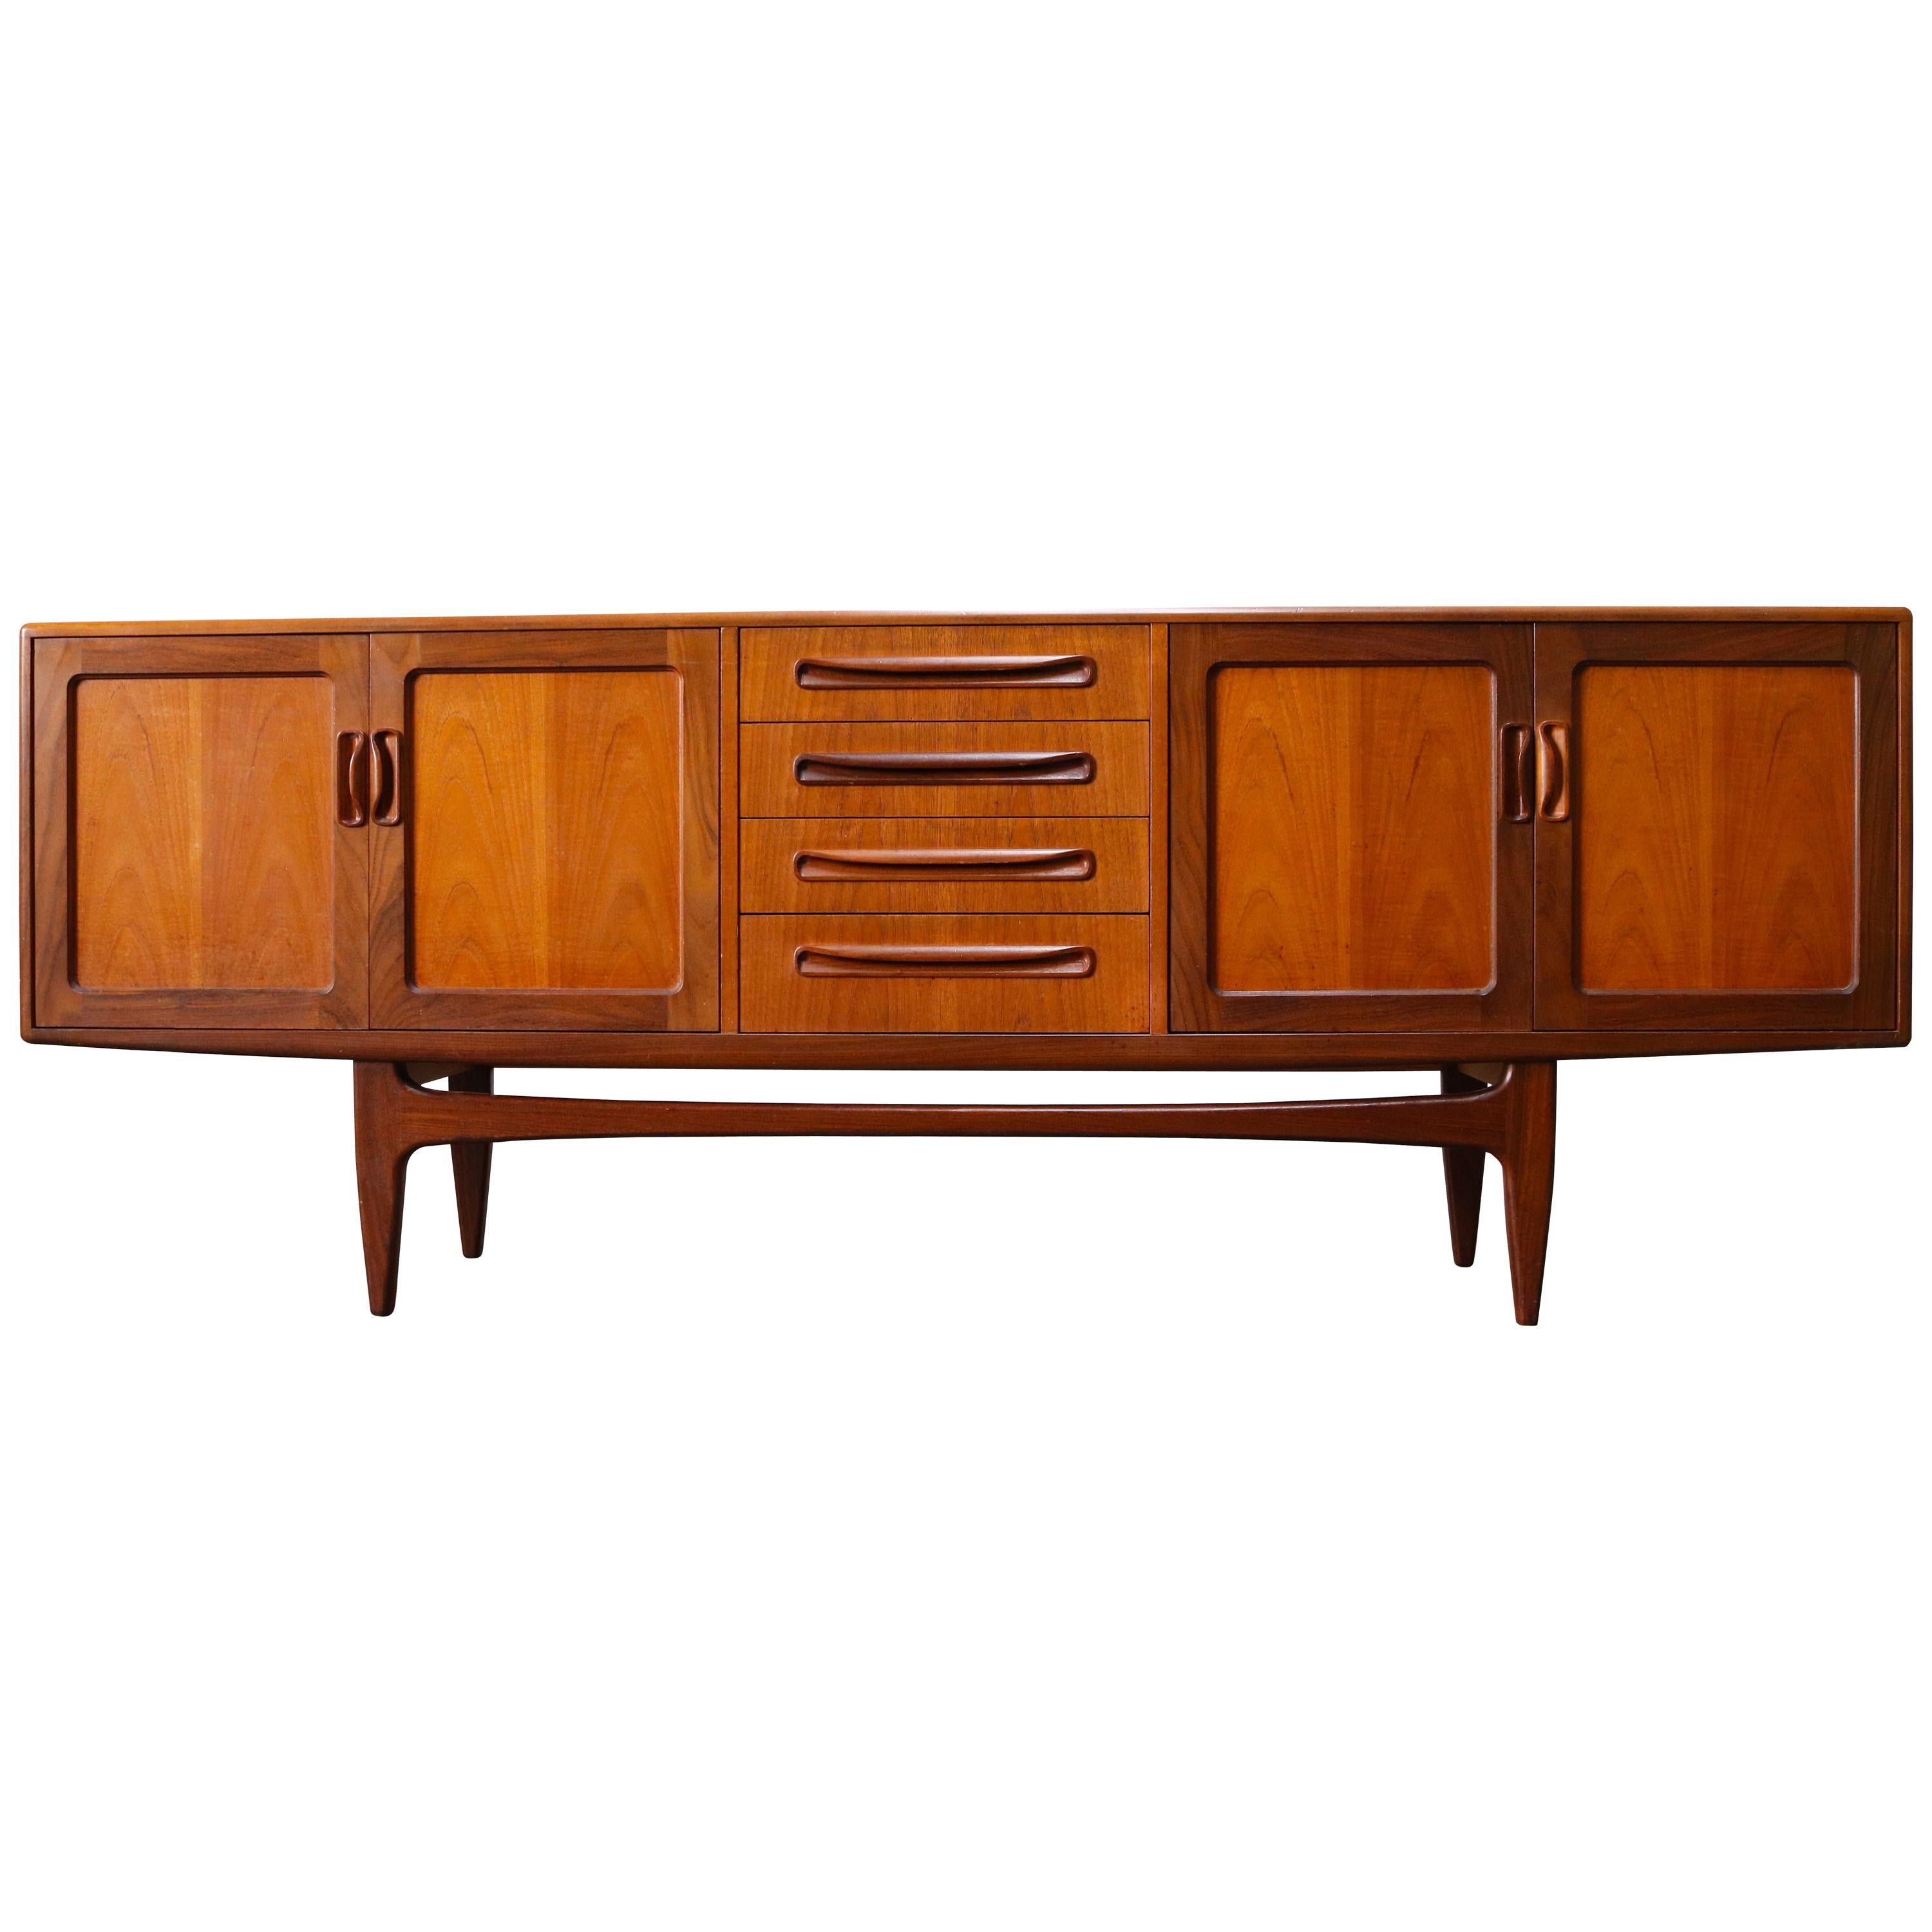 Magnificent Teak Credenza / Sideboard by Ib Kofod-Larsen for G Plan, 1950s